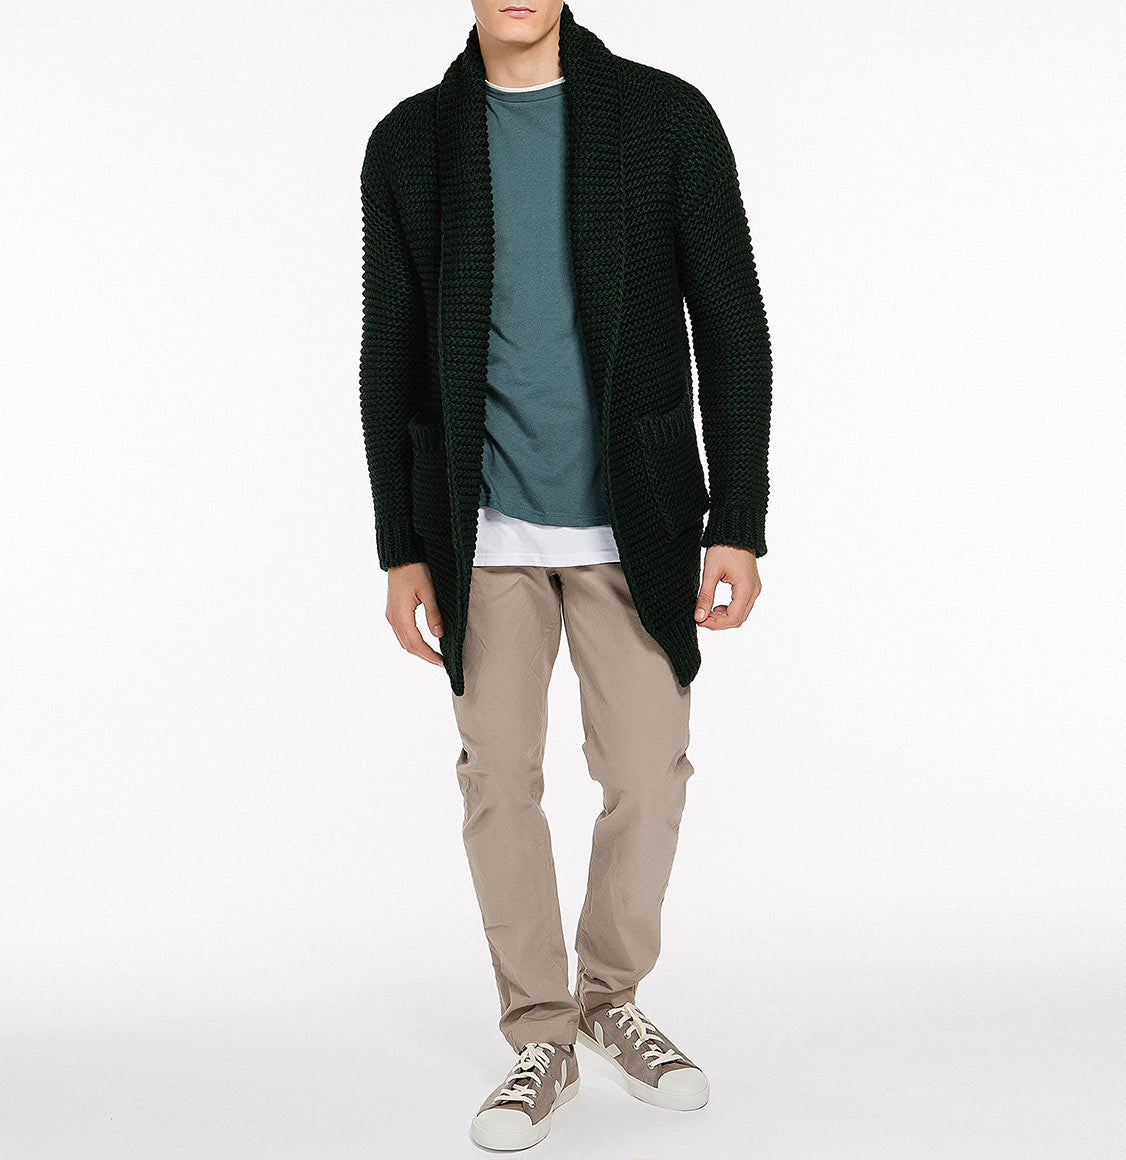 Oversized Shawl Collar Wool Blend Cardigan Forest Green Model